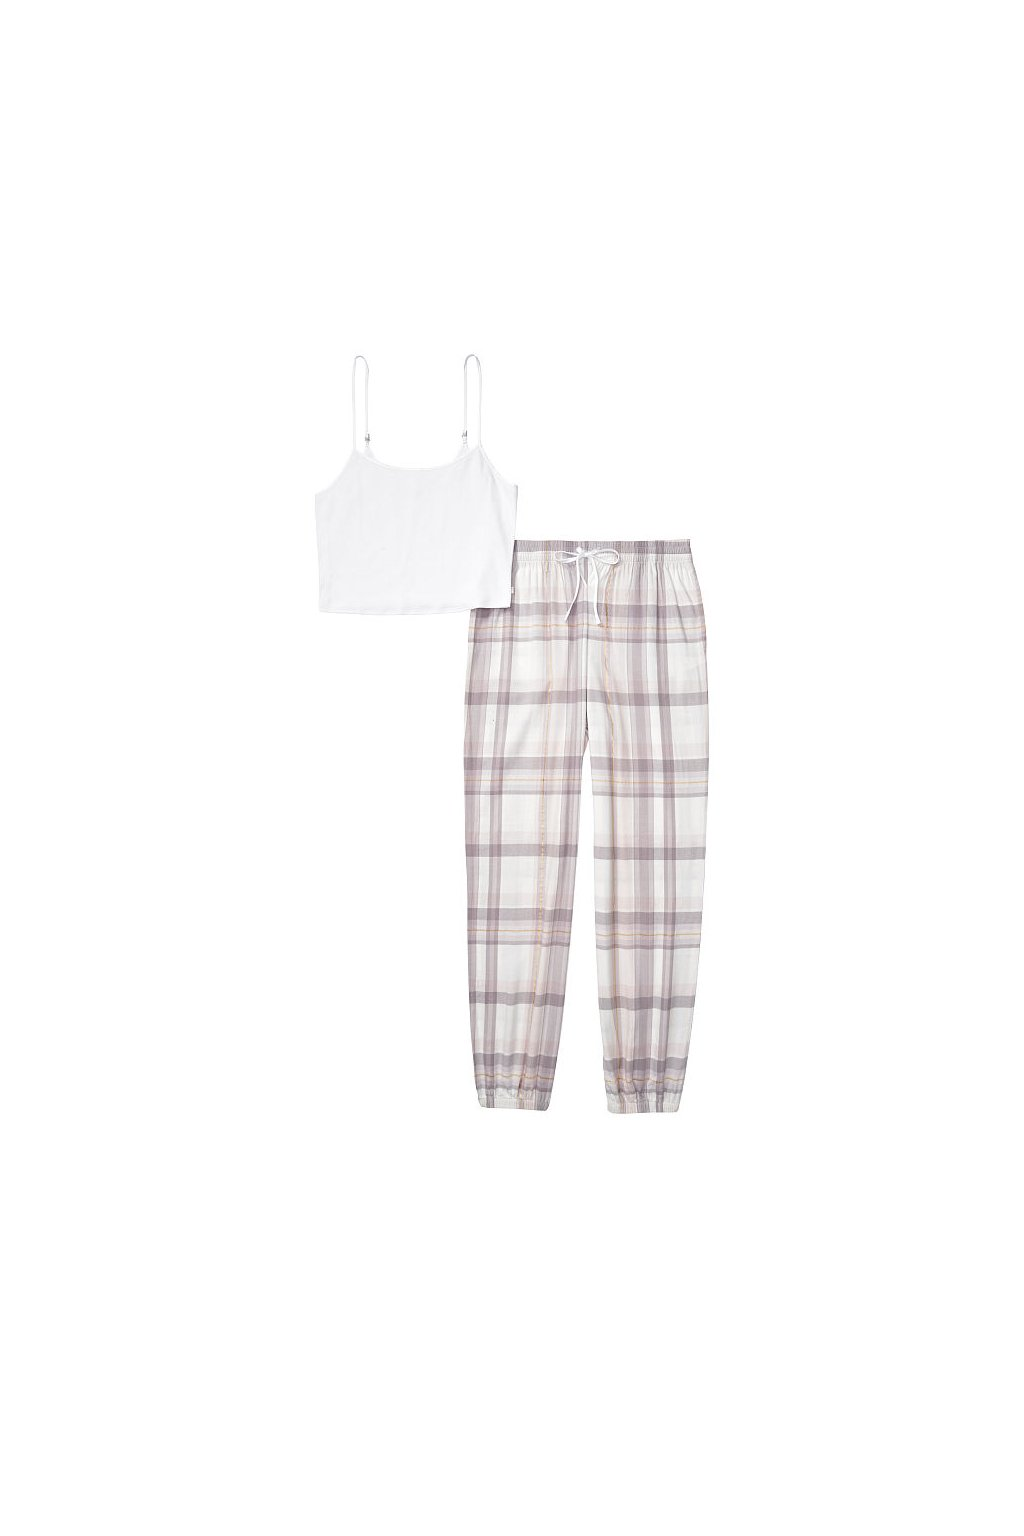 Victoria's Secret pyžamo Flannel Jogger Cami Tee-jama / Pretty Plaid